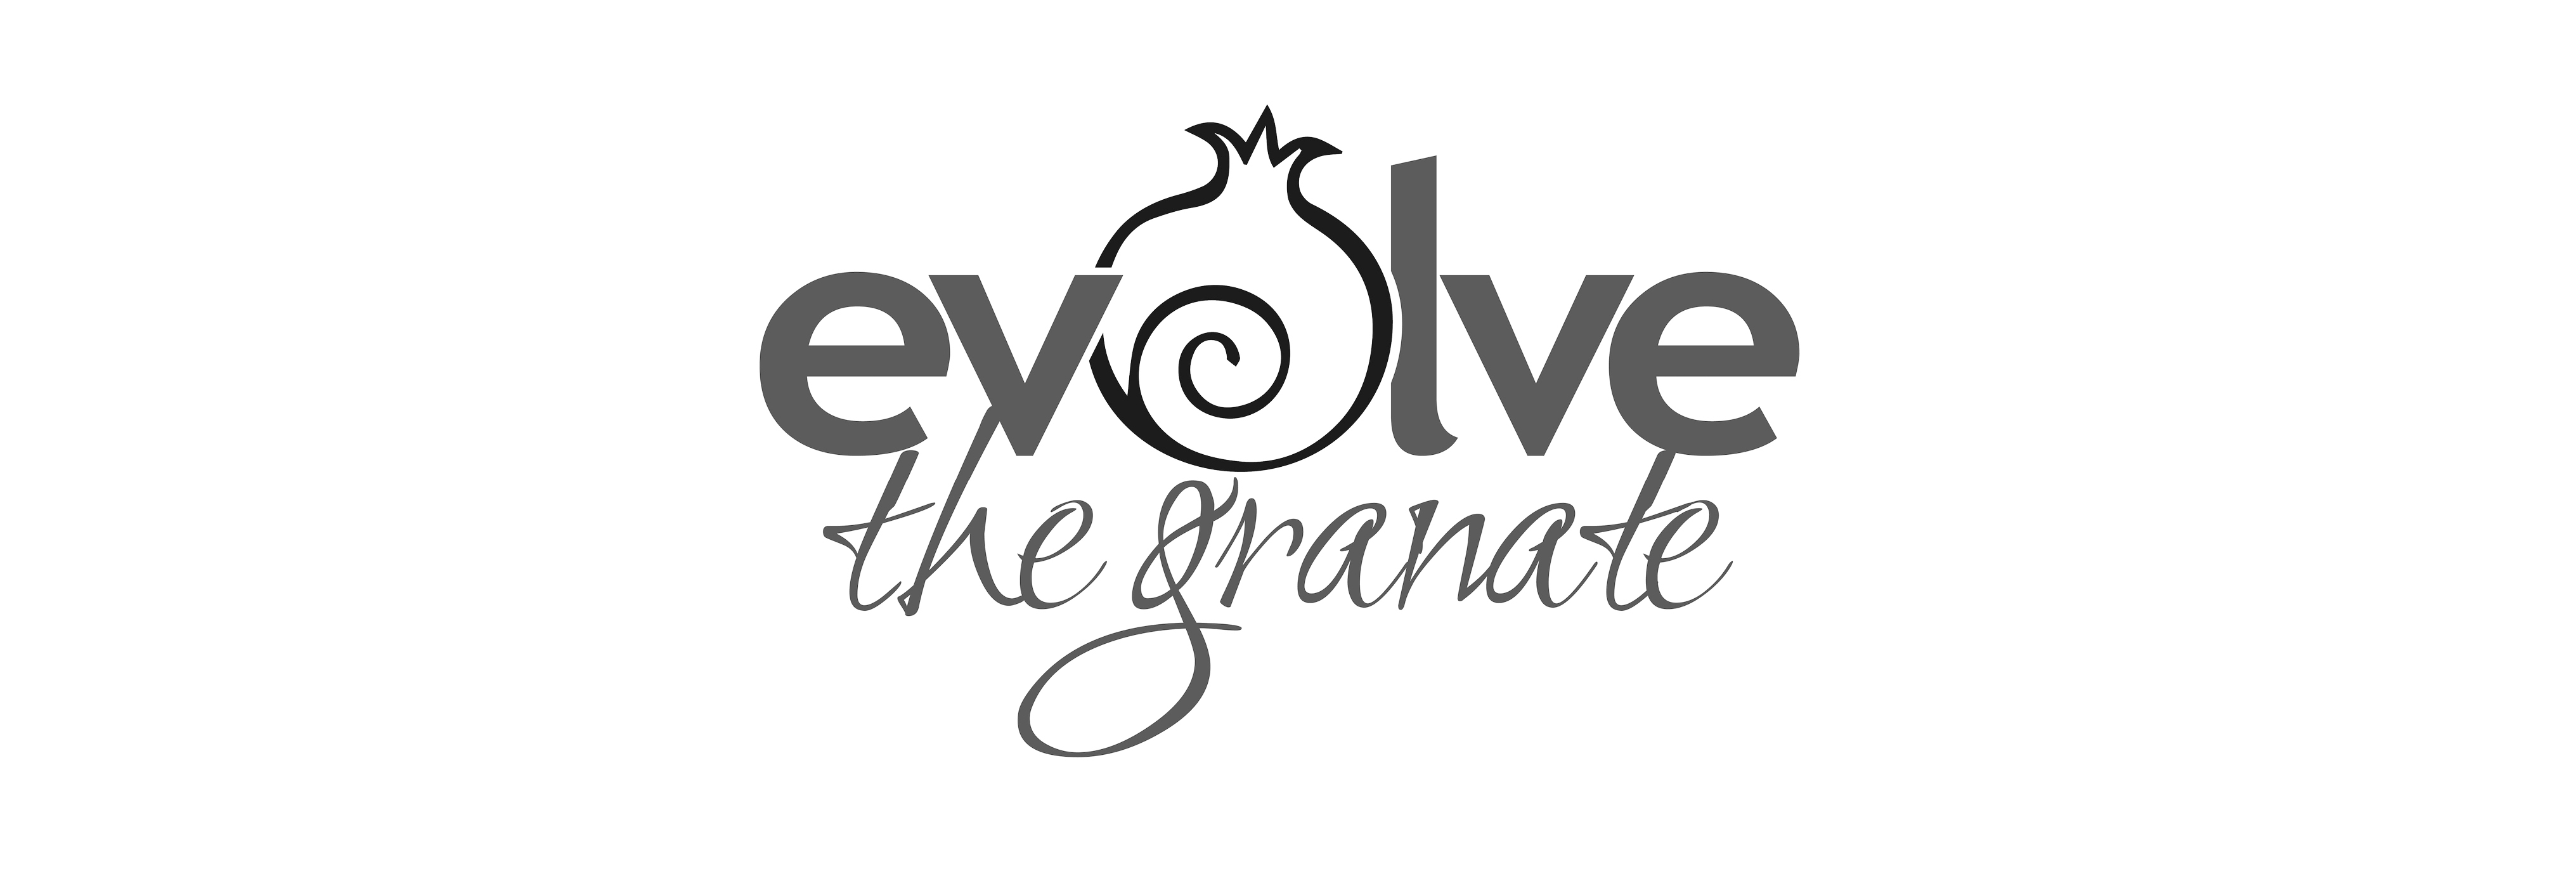 Evolve the Granate | Odd Poppy Advertising Agency | Magaliesburg | Hekpoort | Clients